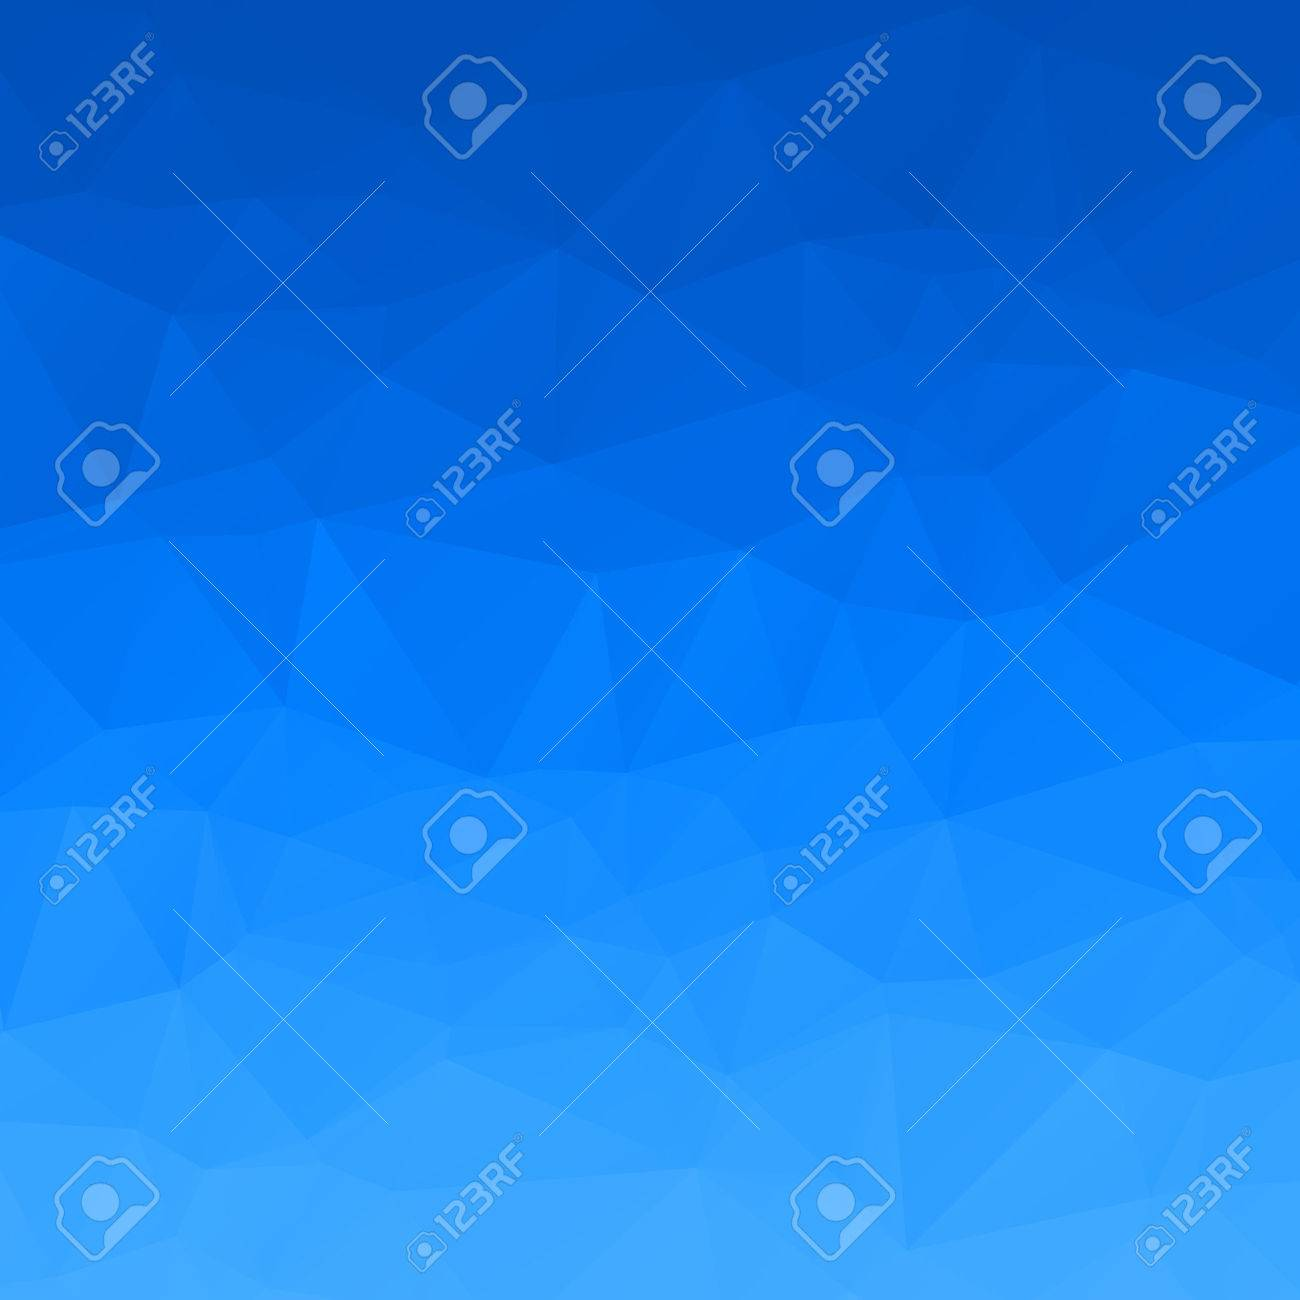 Abstract blue sky polygon background - 43568762